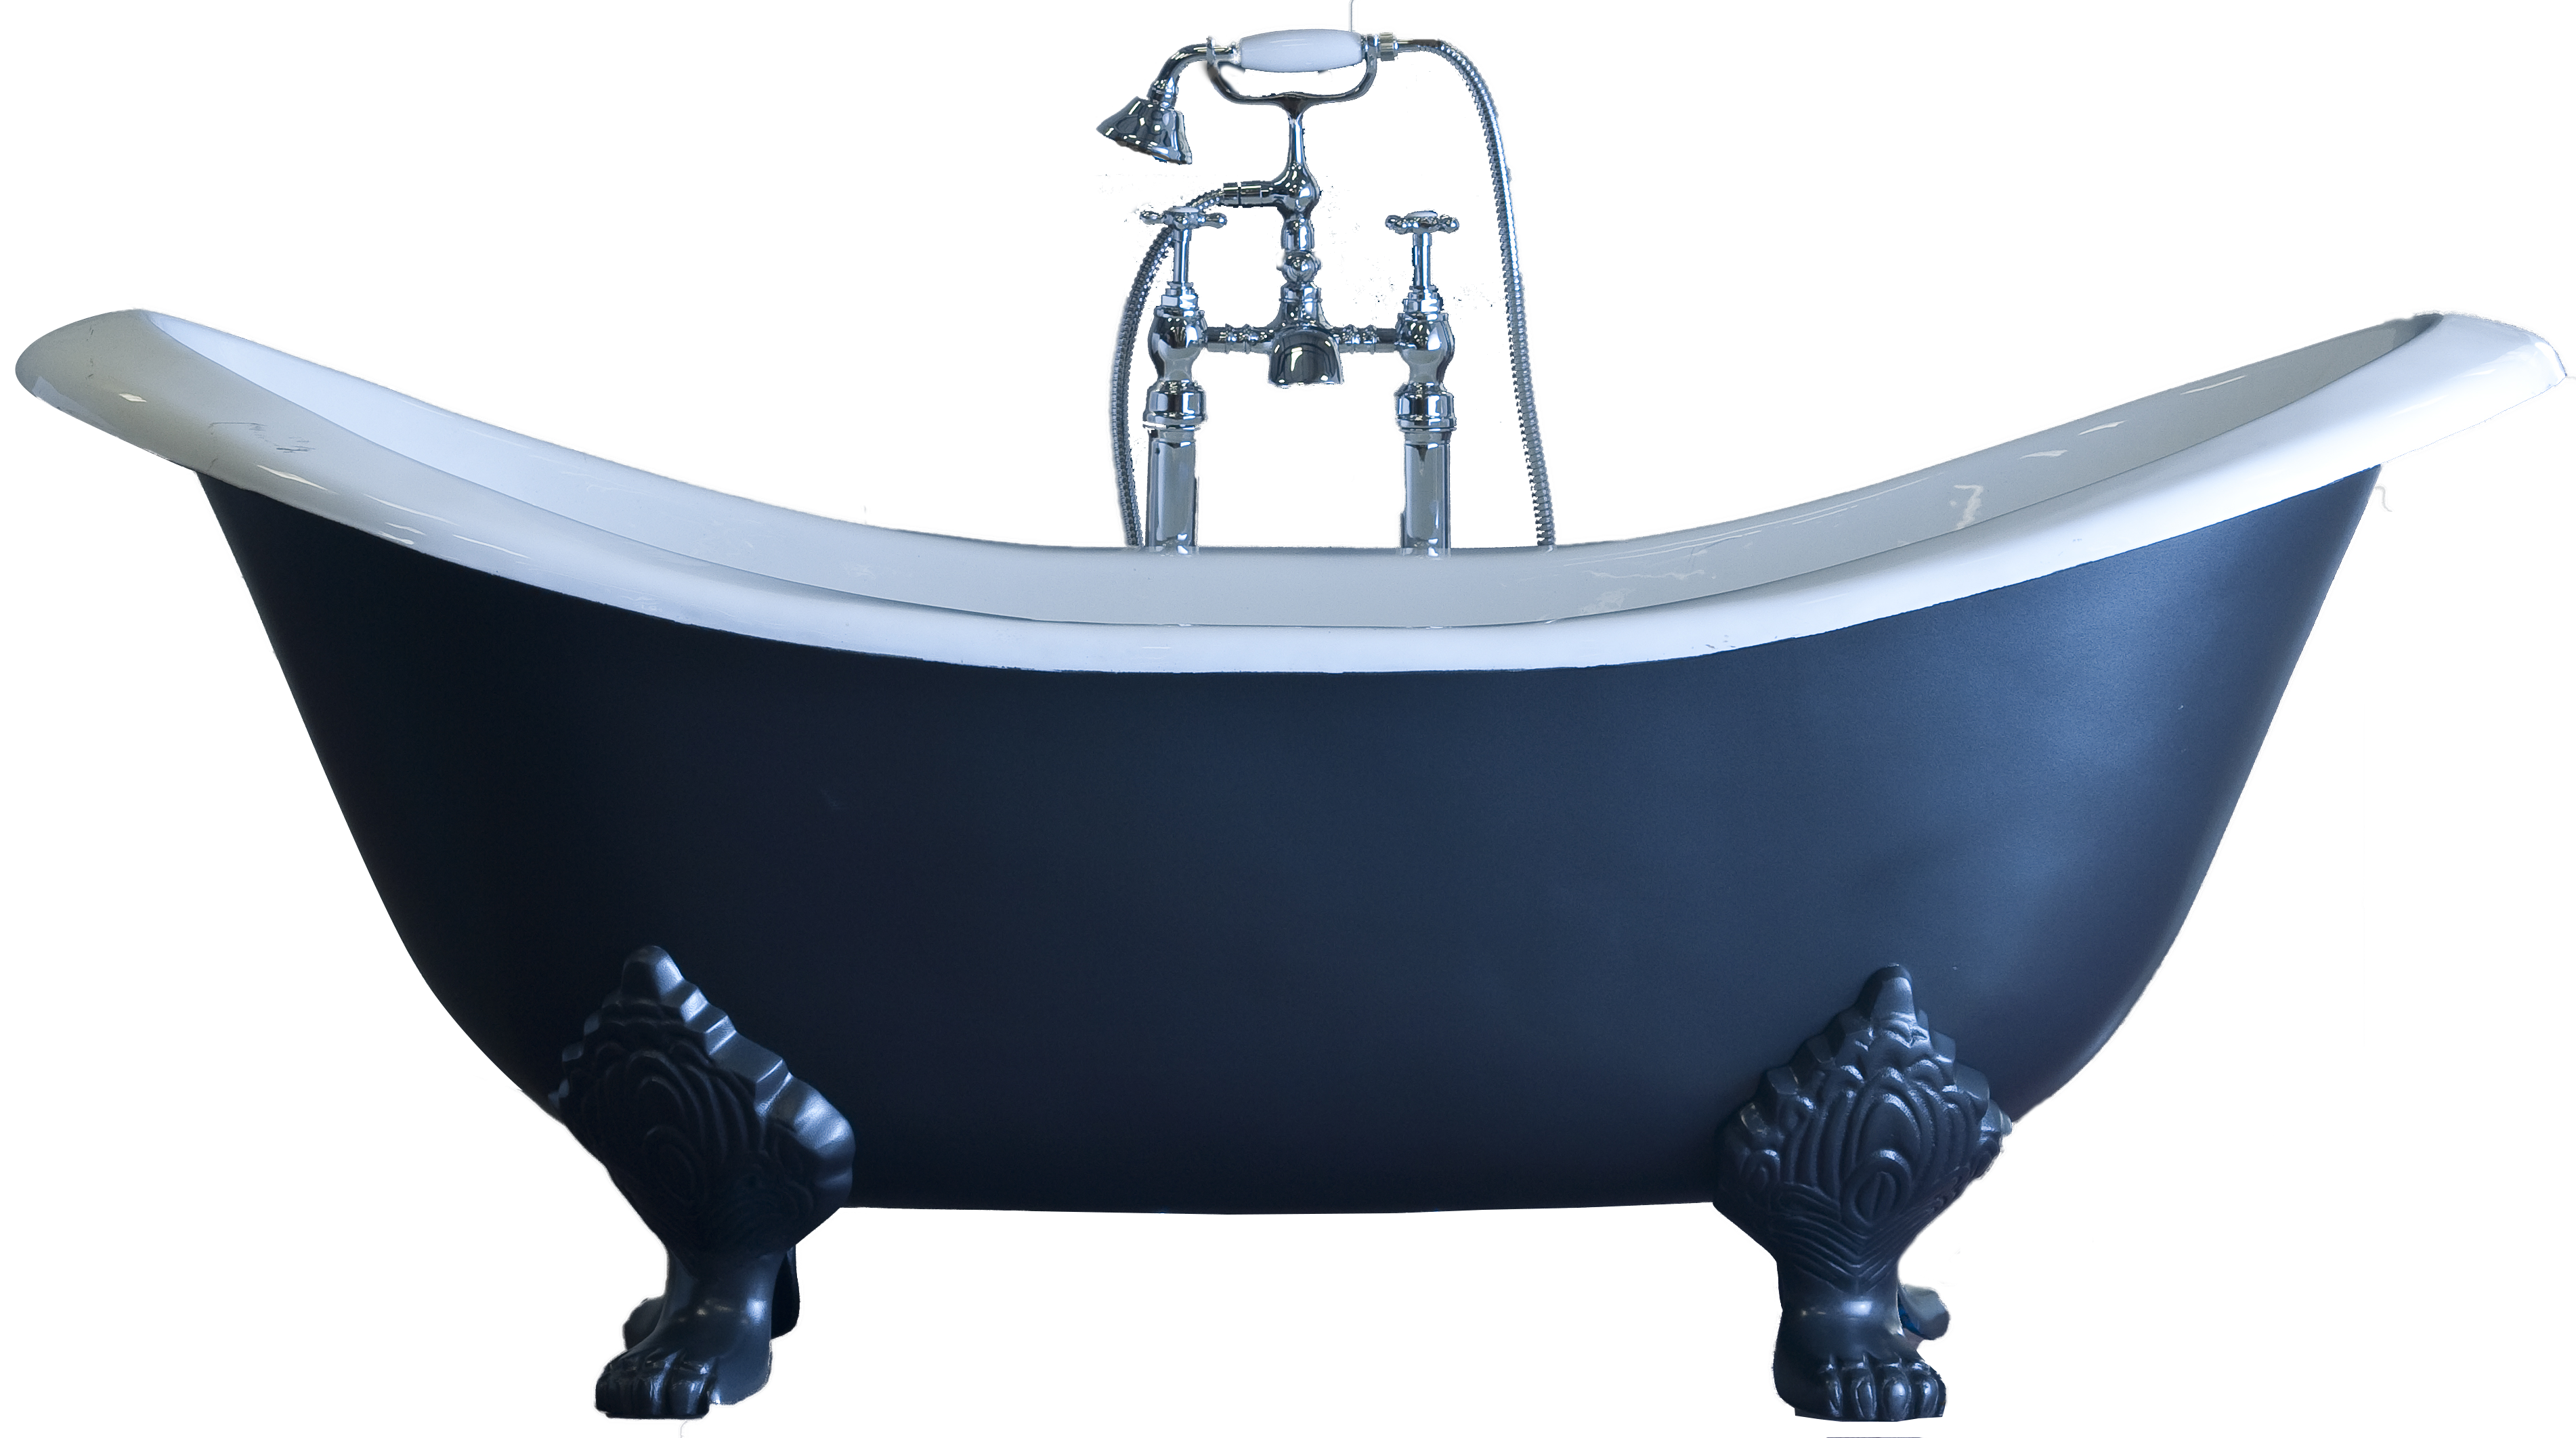 Funky Iron Baths Mold - Bathtub Design Ideas - klotsnet.com